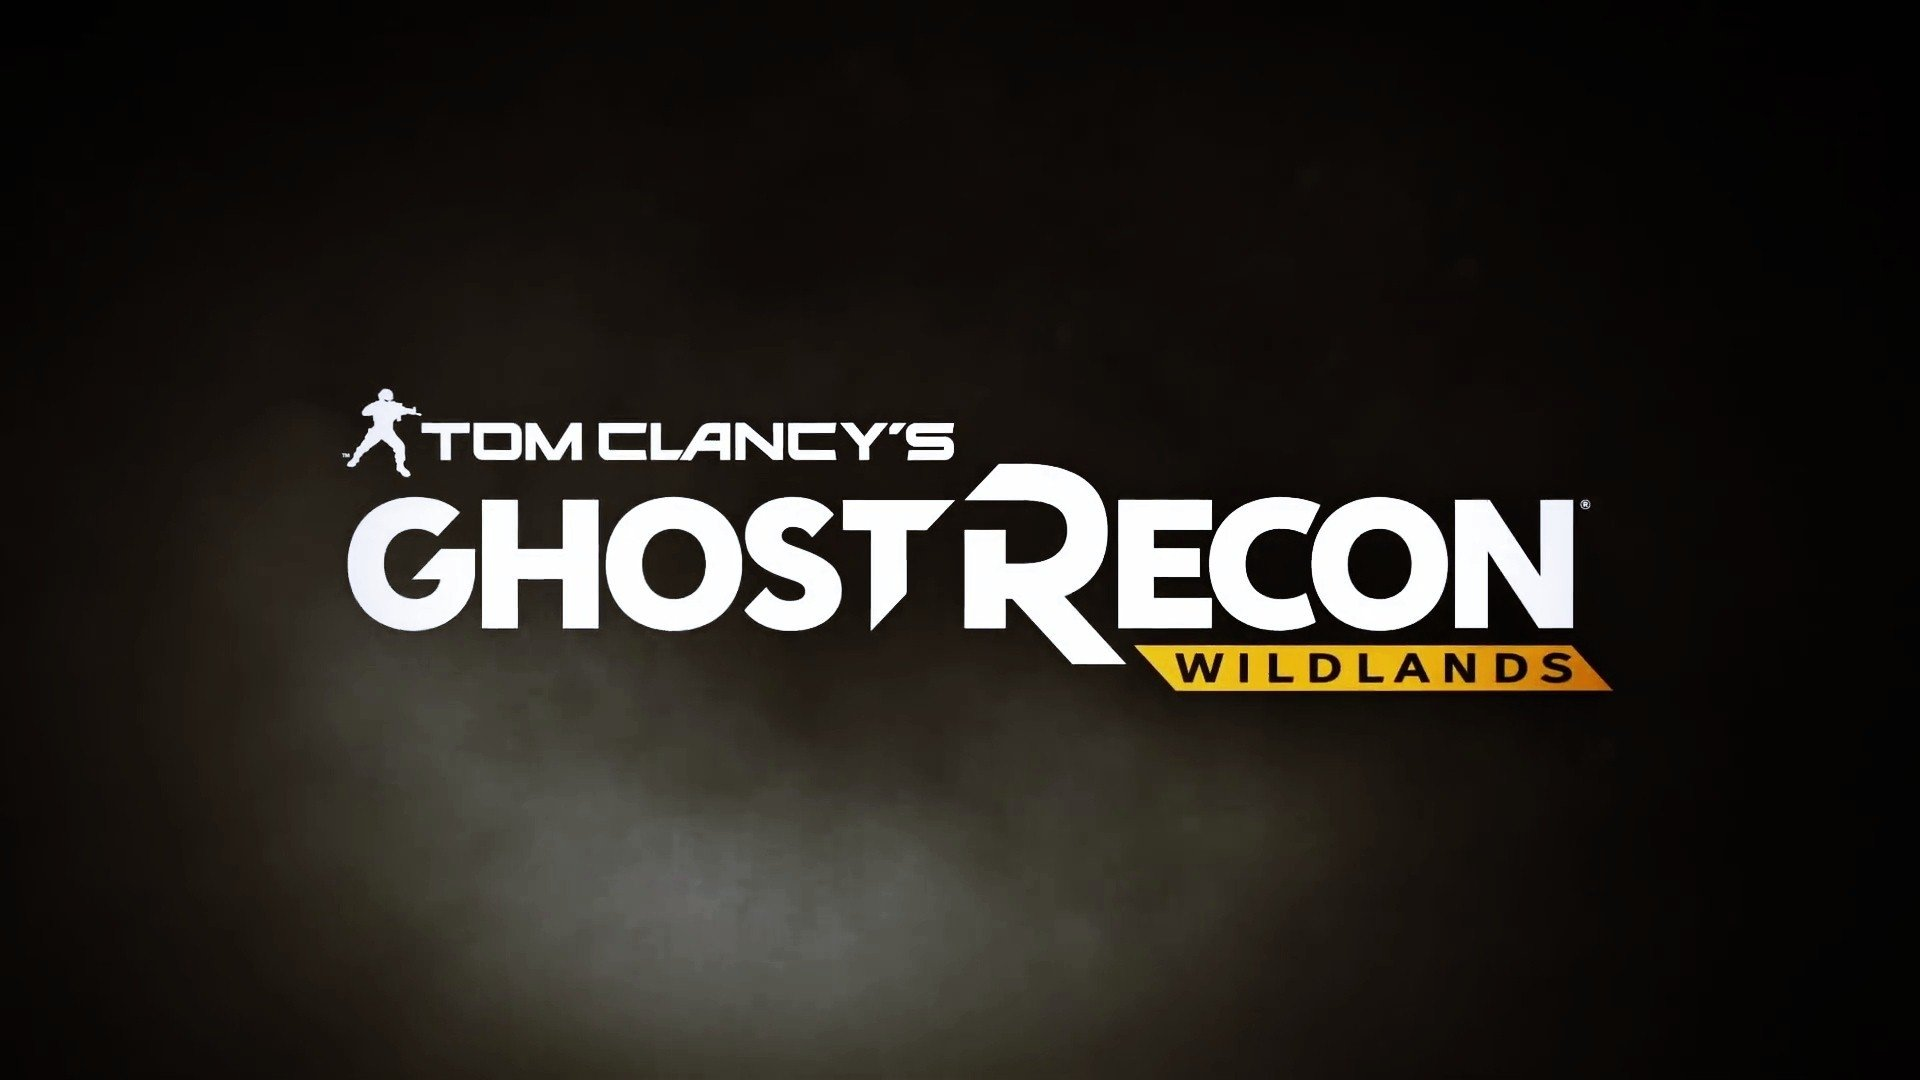 Tom Clancy S Ghost Recon Wildlands Hd Wallpaper Background Image